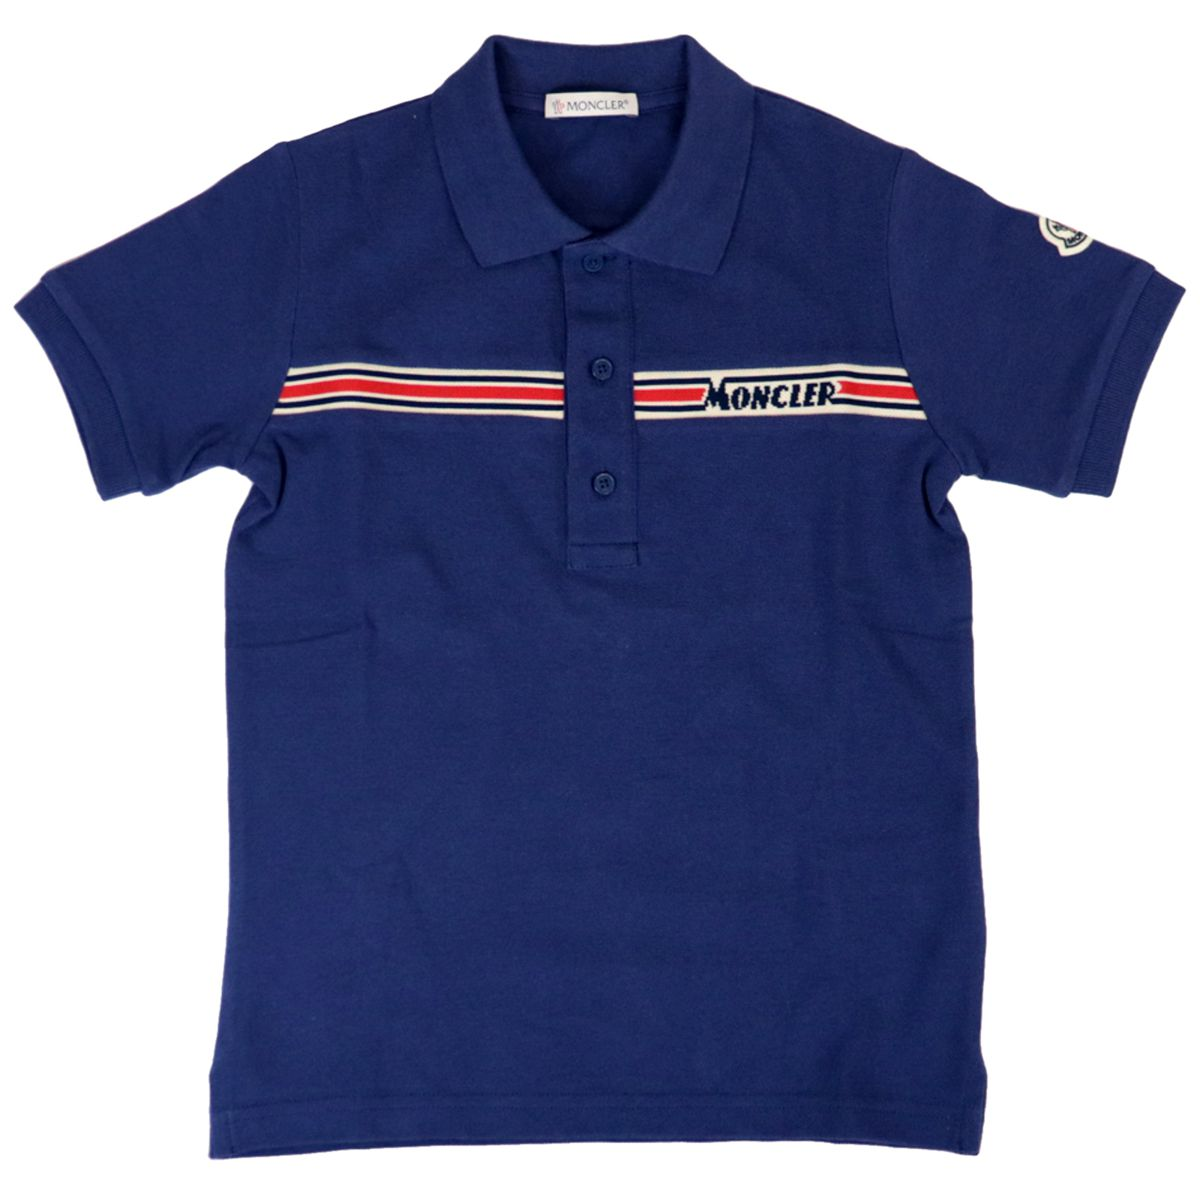 Cotton piqué polo shirt with logoed band Ink Moncler